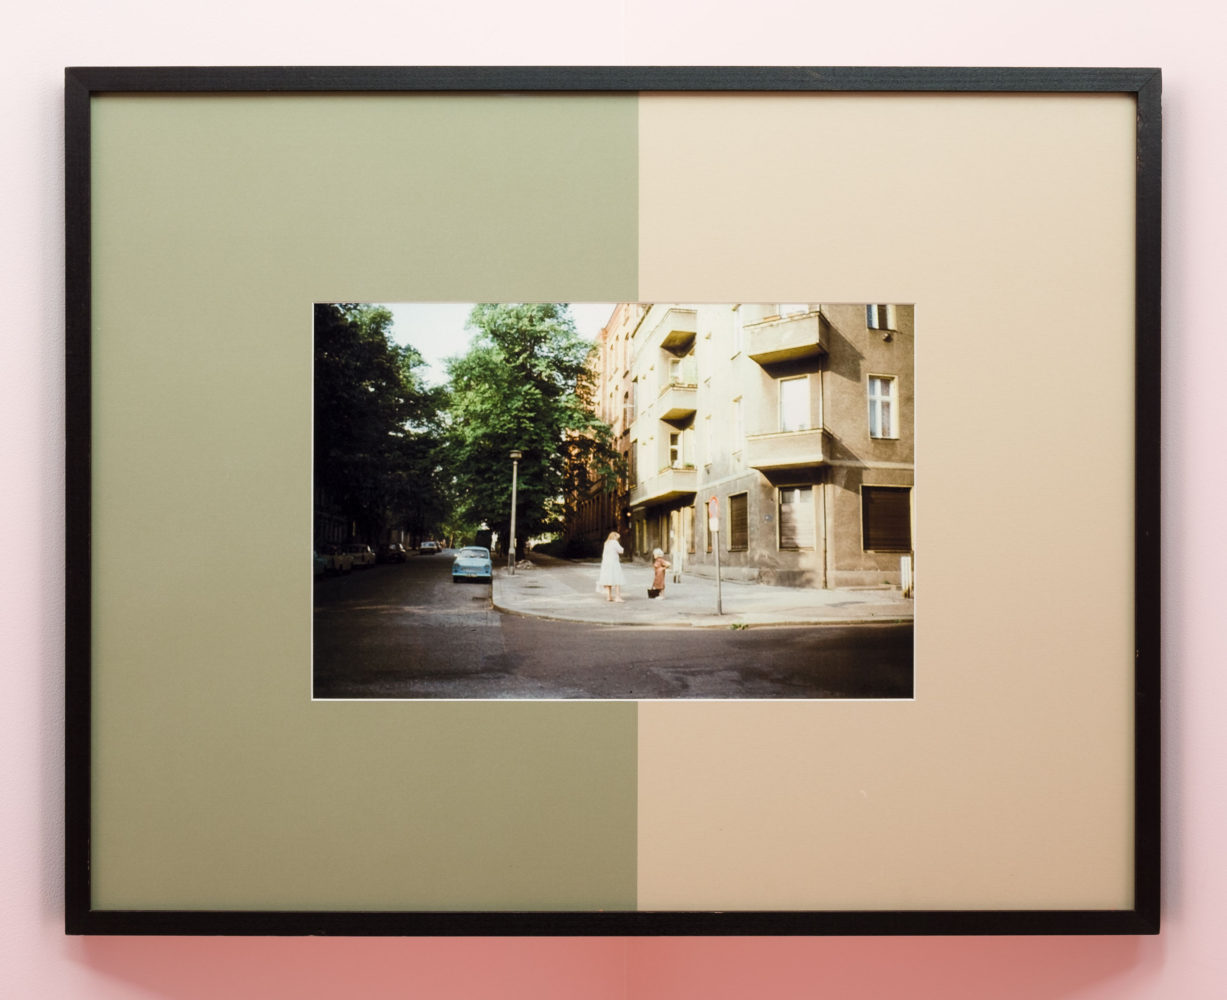 P!, o_u_DSF4768_low_res Barbara Bloom, Berlin Street Corner, 1989